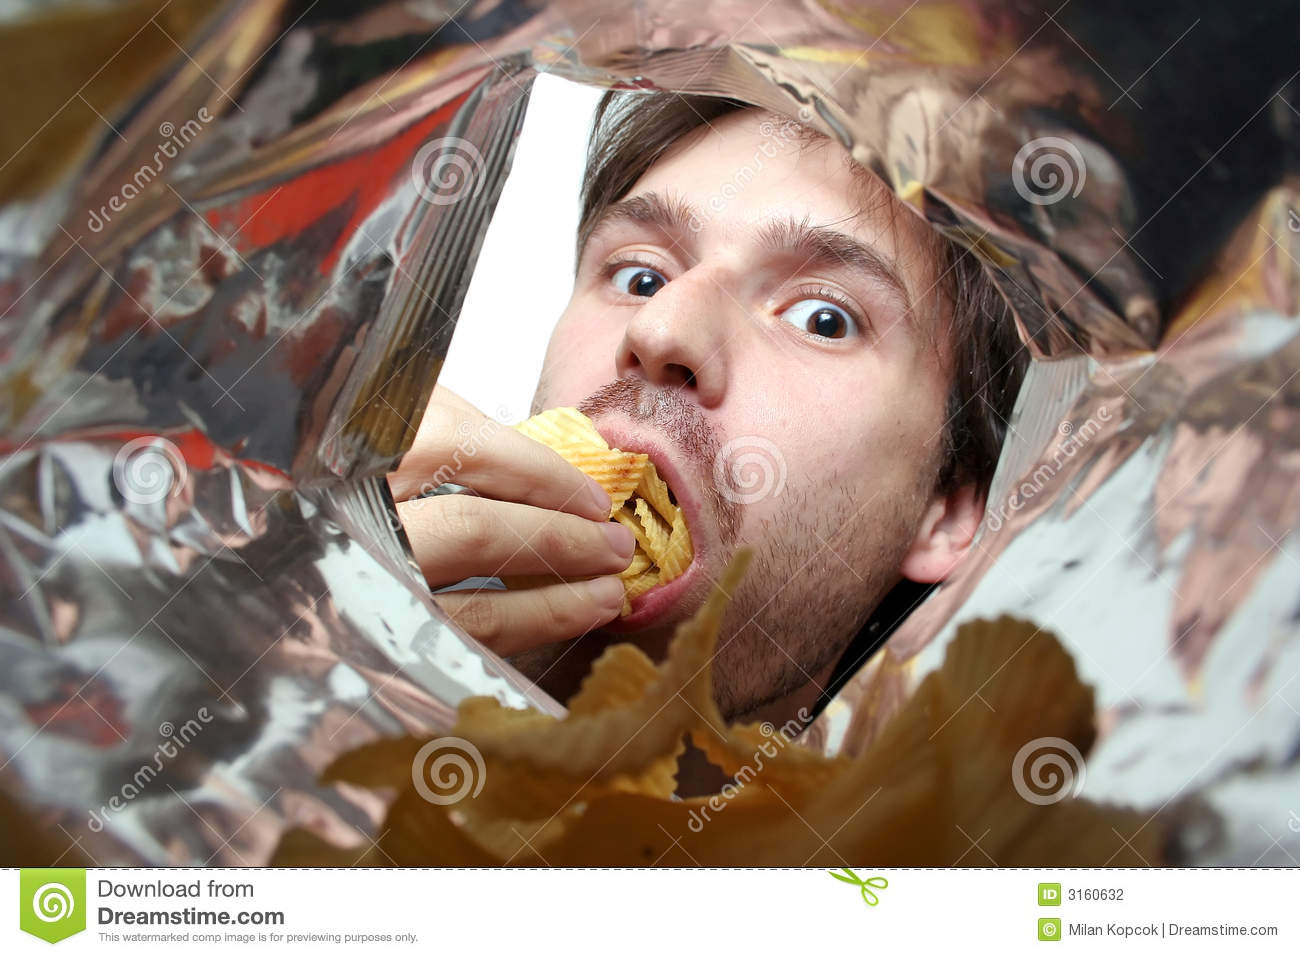 Eating chips stock photography image 3160632